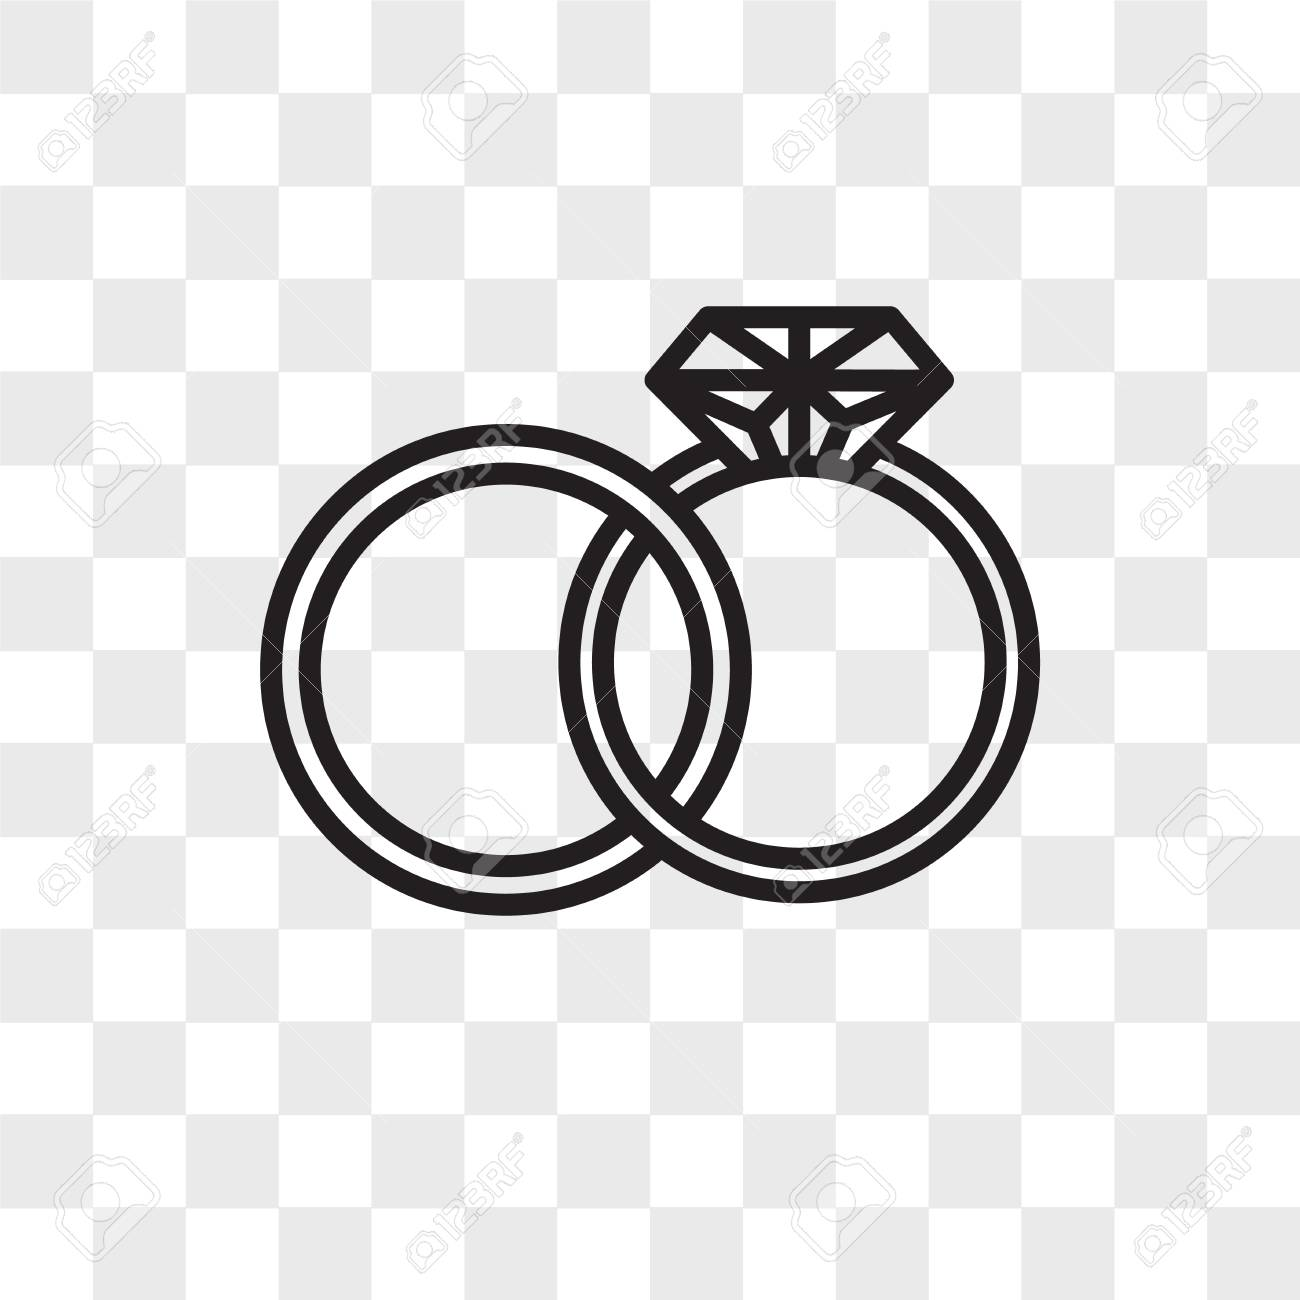 jewelry vector icon isolated on transparent background jewelry royalty free cliparts vectors and stock illustration image 110456820 jewelry vector icon isolated on transparent background jewelry